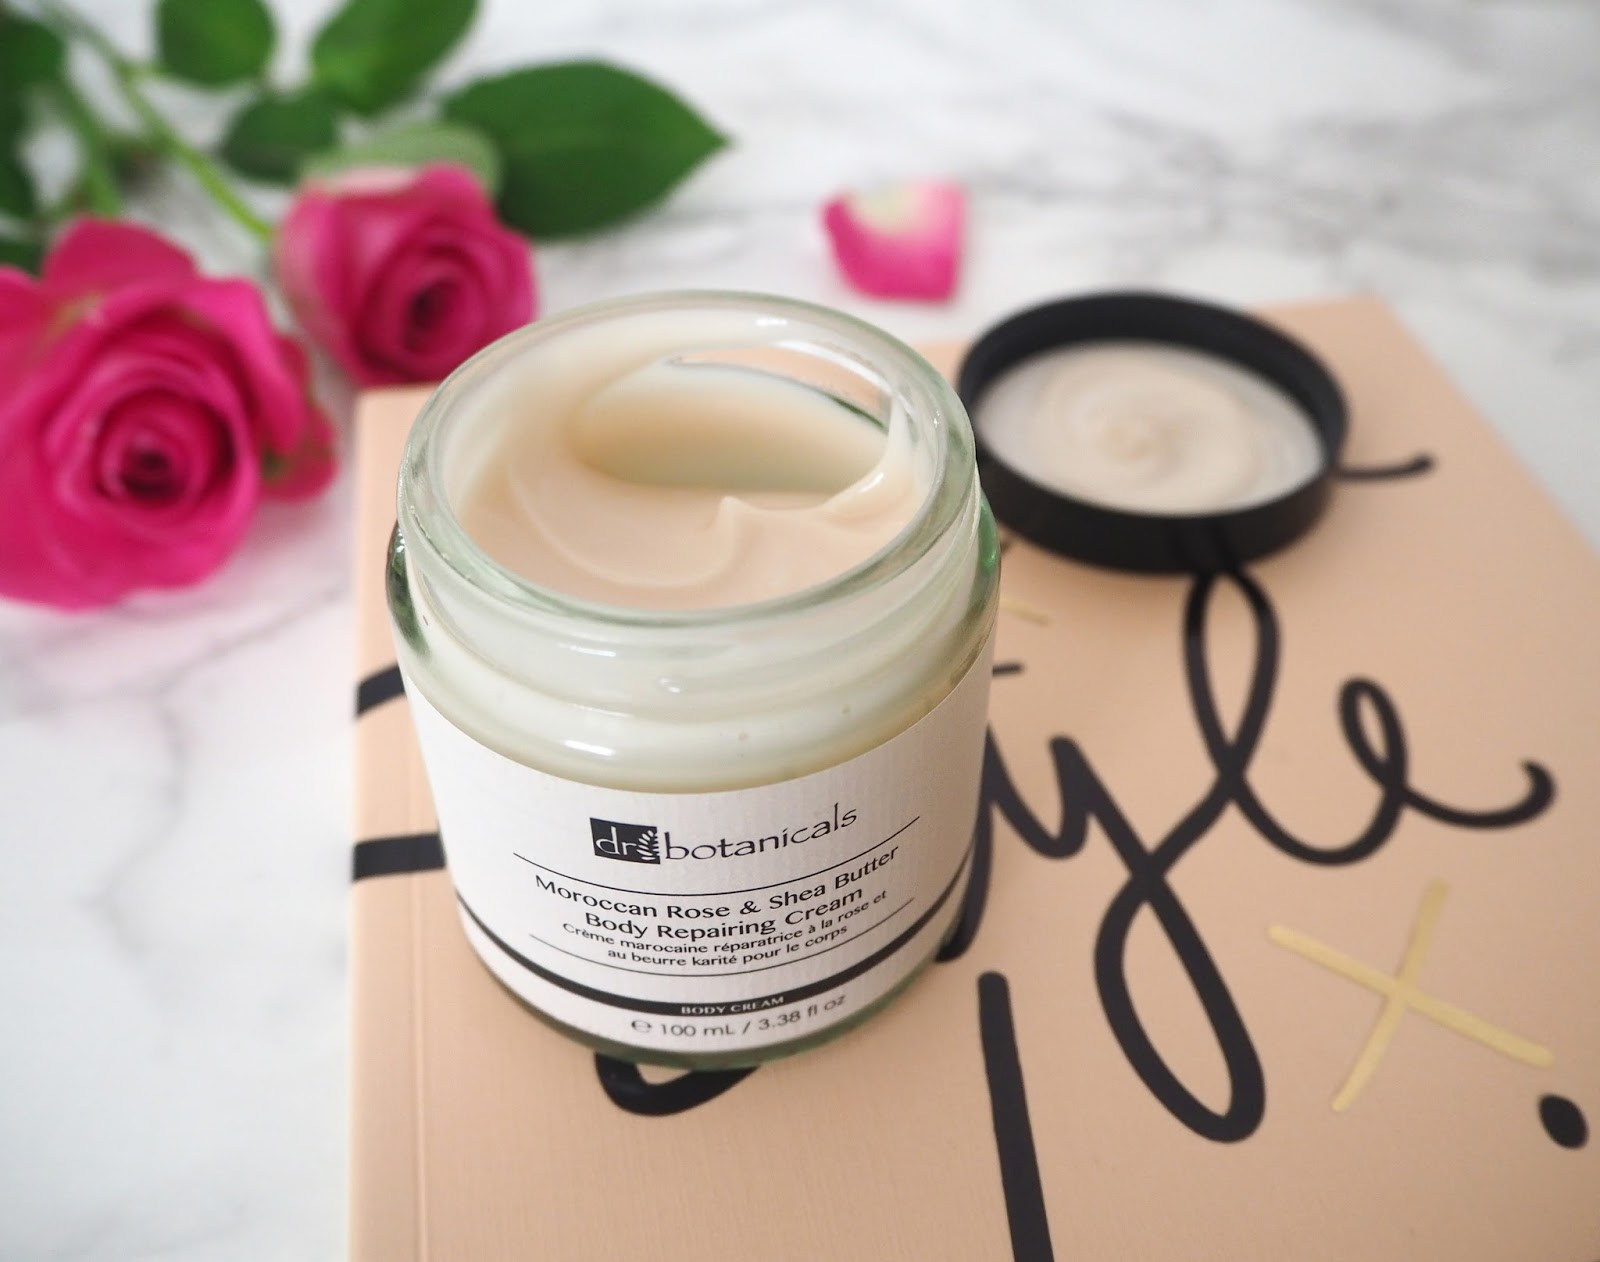 Dr Botanicals Moroccan Rose & Shea Butter Body Cream, Katie Kirk Loves, Beauty Blogger, Dr Botanicals Skincare, UK Blogger, Skincare Review, Moroccan Rose, Fragrance